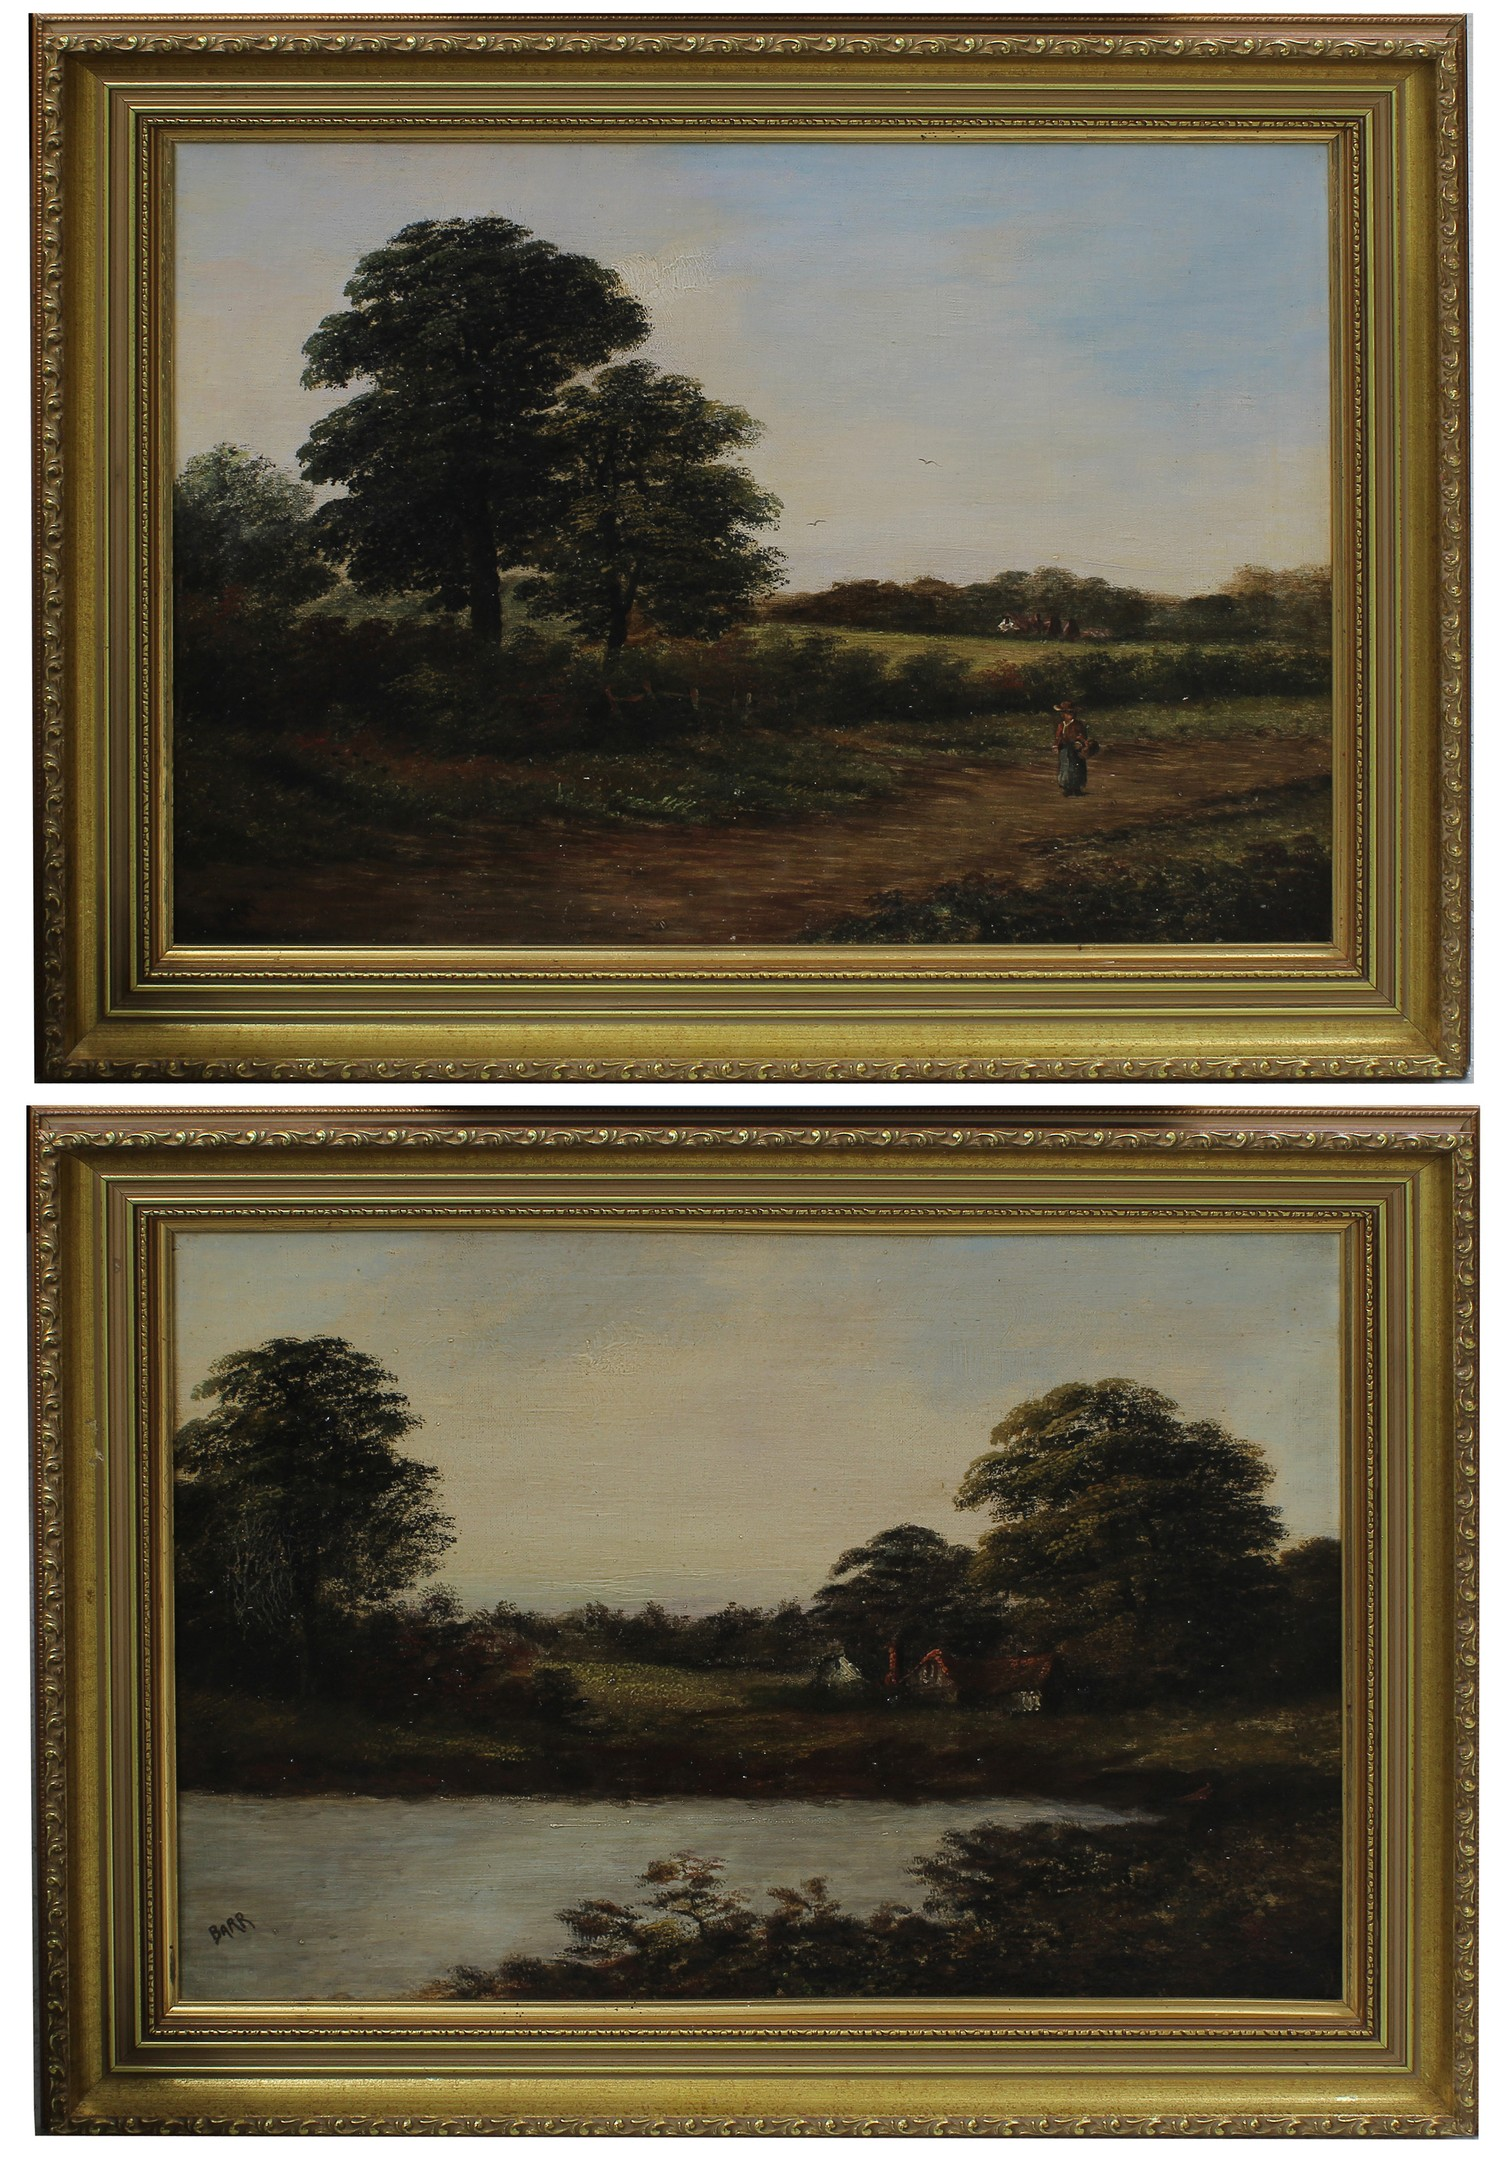 **Barr (20th century) -landscape with a figure walking on a path, tress beside a wooden fence and